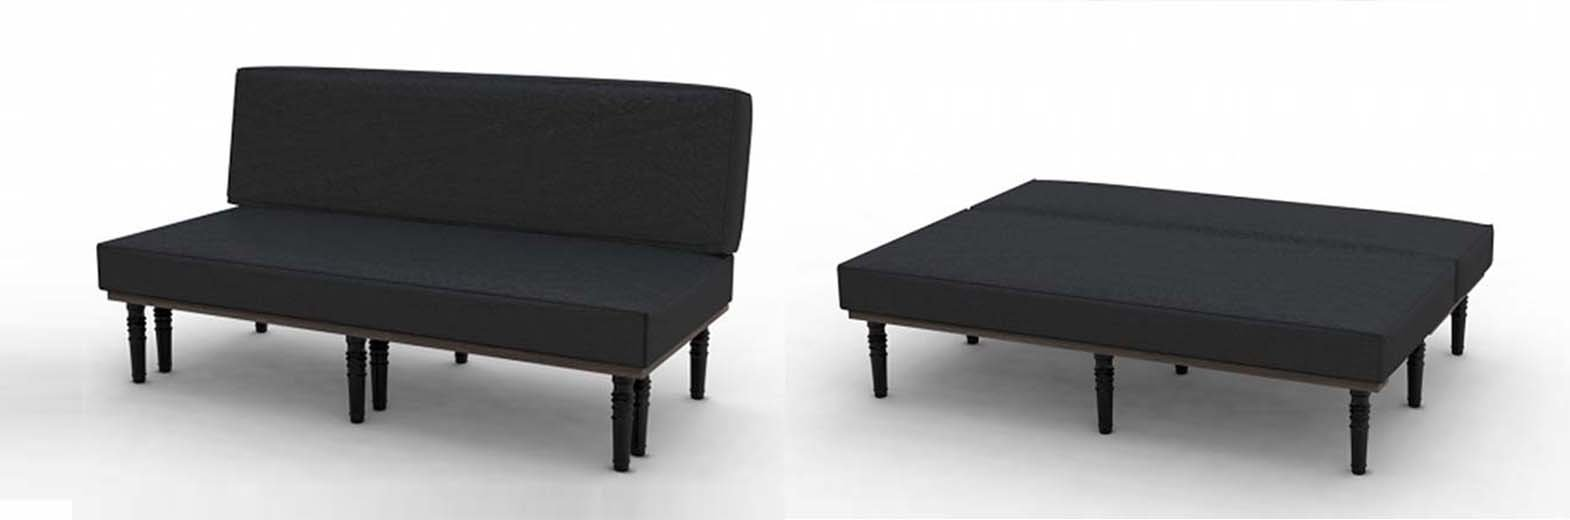 Bench sofa bed sofa bed design ottoman harvey norman for Sofa bed 140 x 200